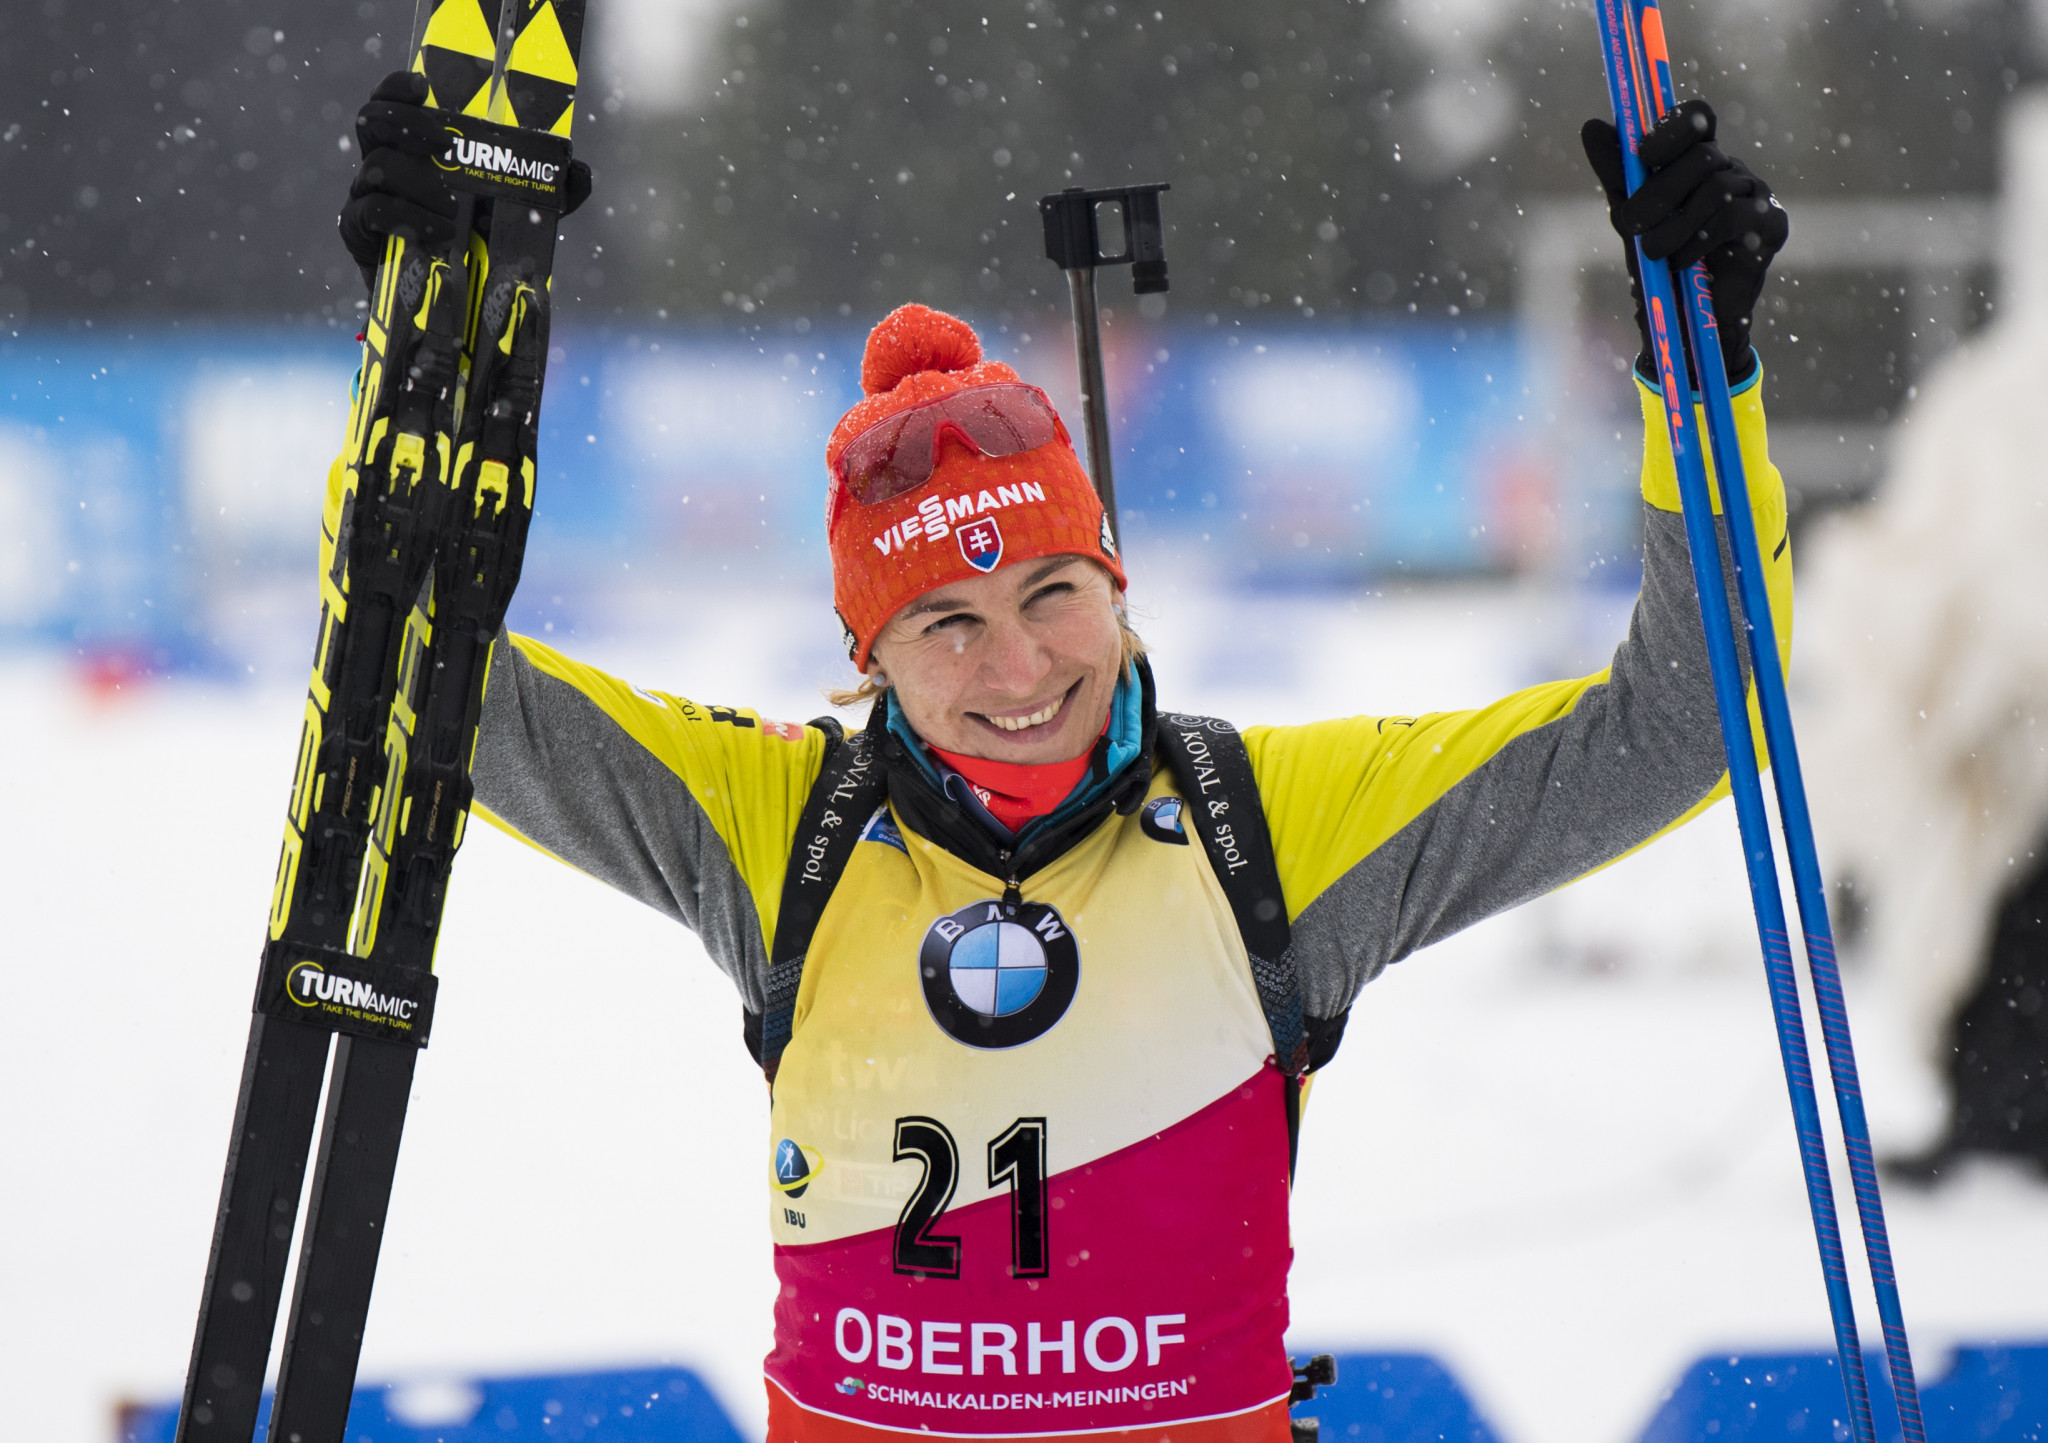 Kuzmina extends overall lead with sprint victory at IBU World Cup